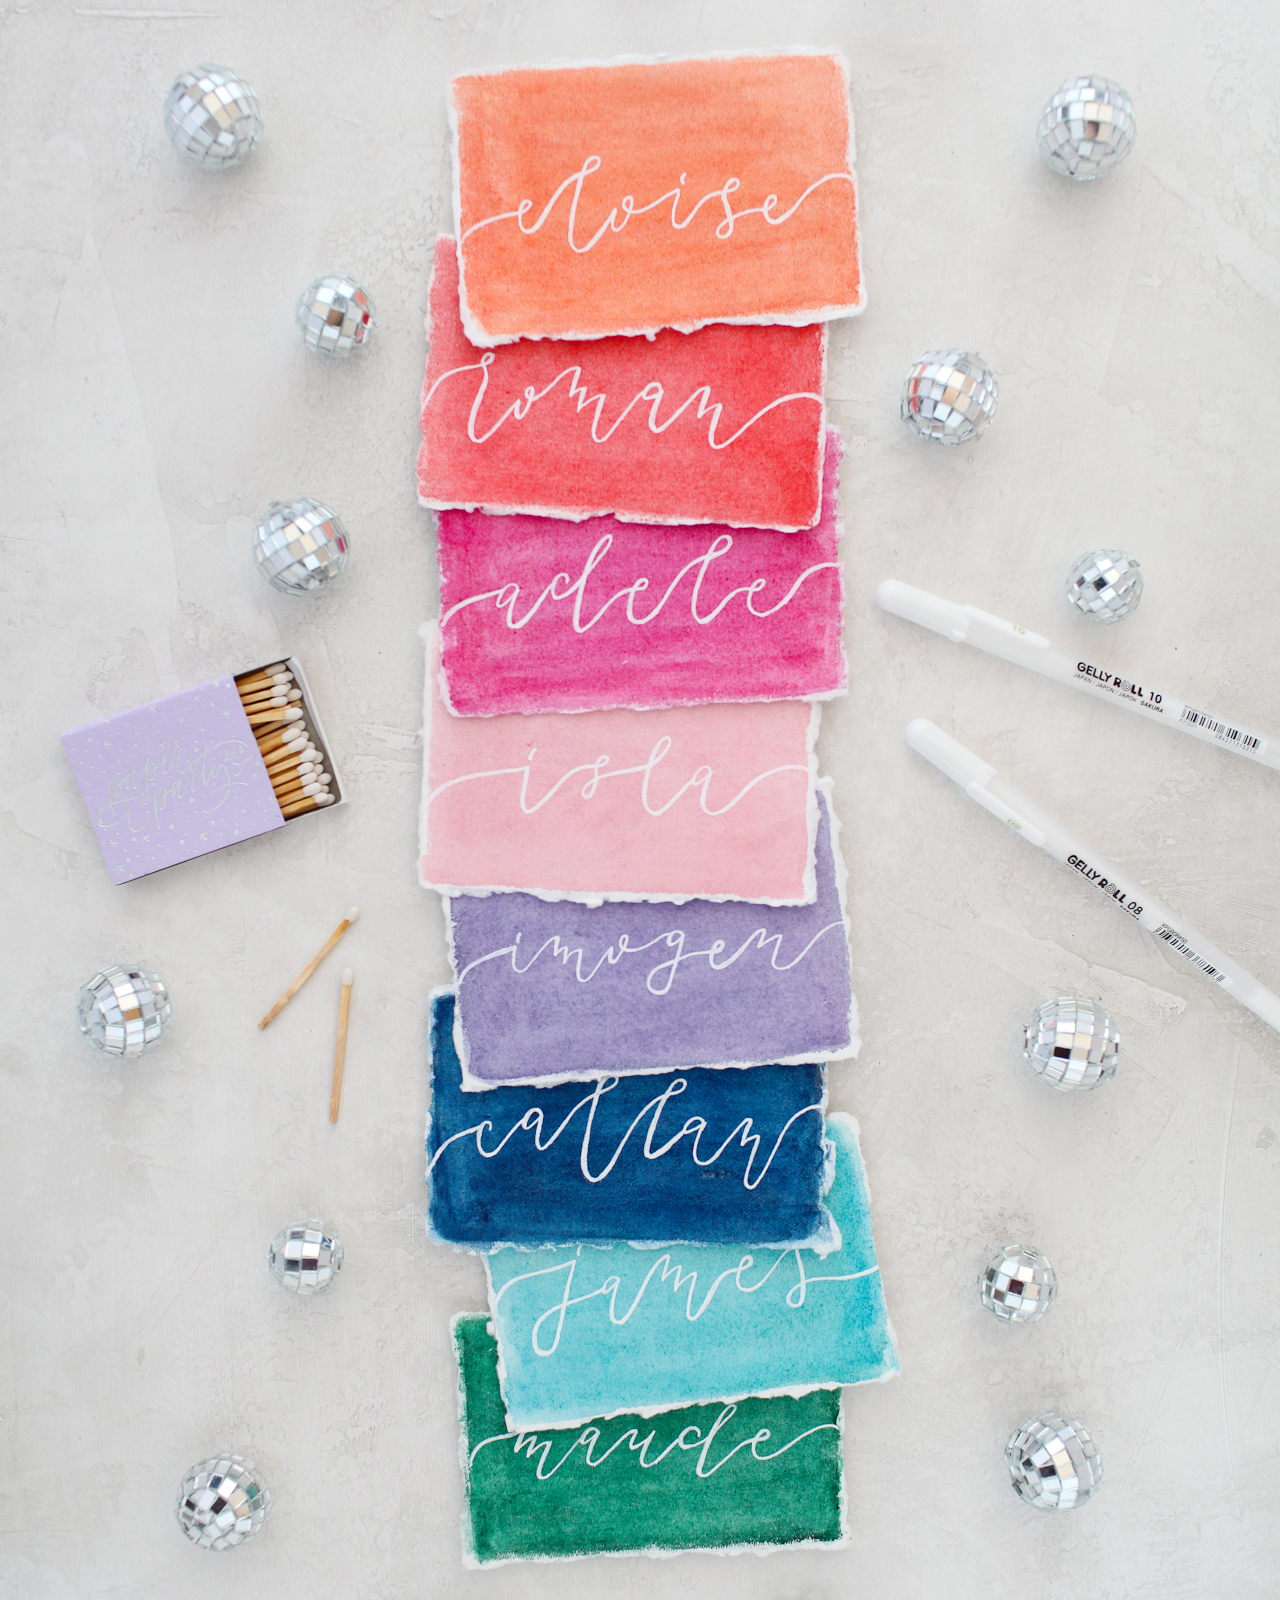 Rainbow Watercolor Wedding Stationery Inspiration with Sakura Koi Watercolors and White Gelly Roll Pens